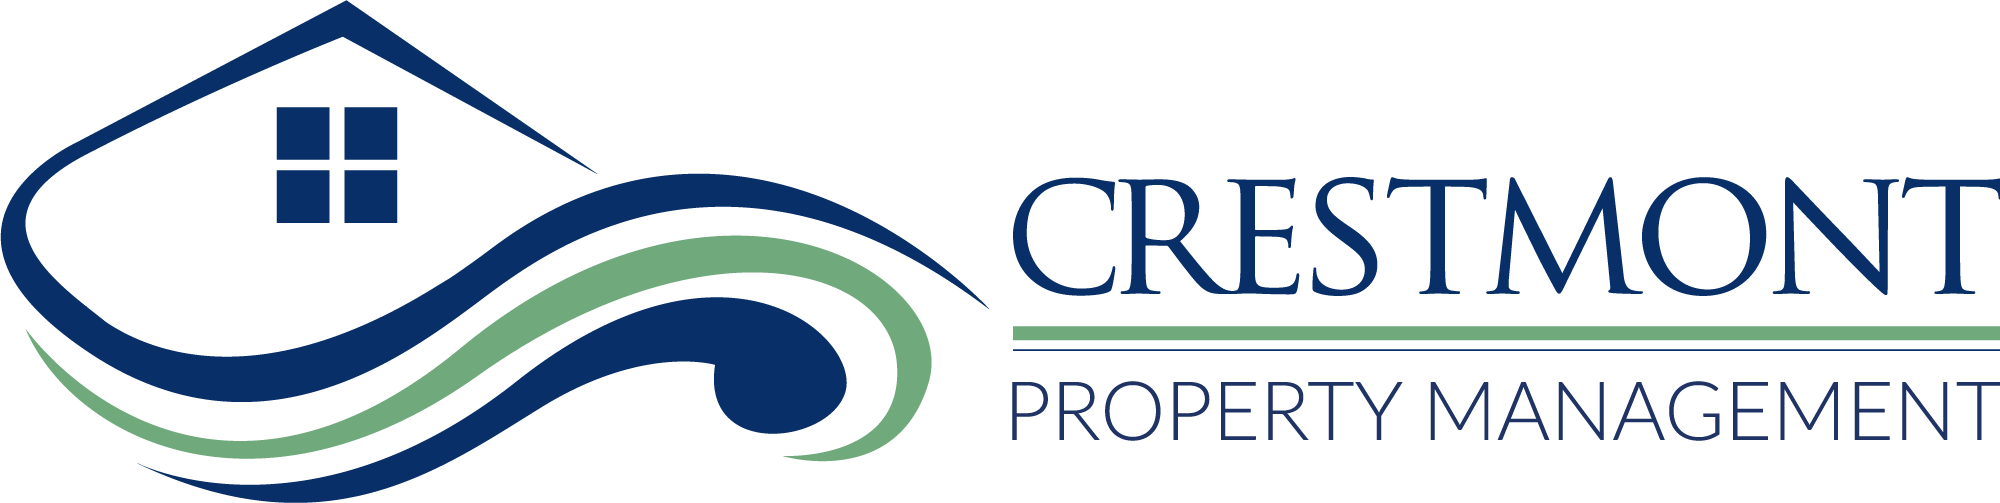 Crestmont Realty